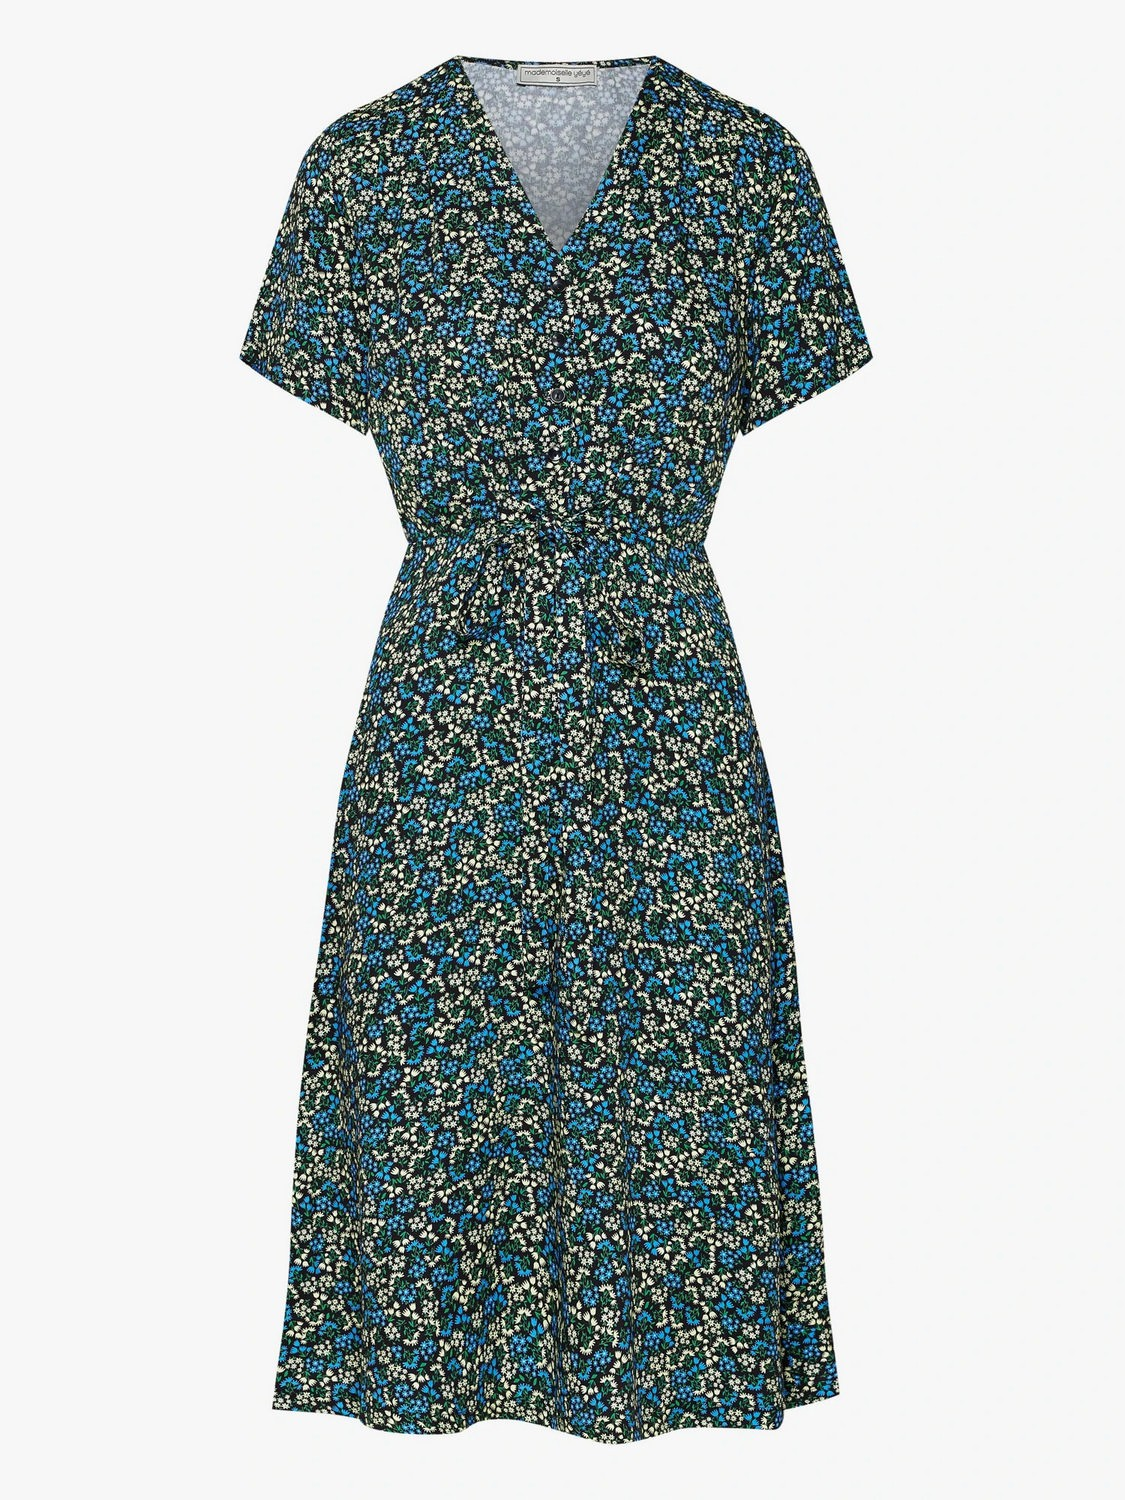 Printed dress with small flowers Twiste Et Chante Mademoiselle Yéyé